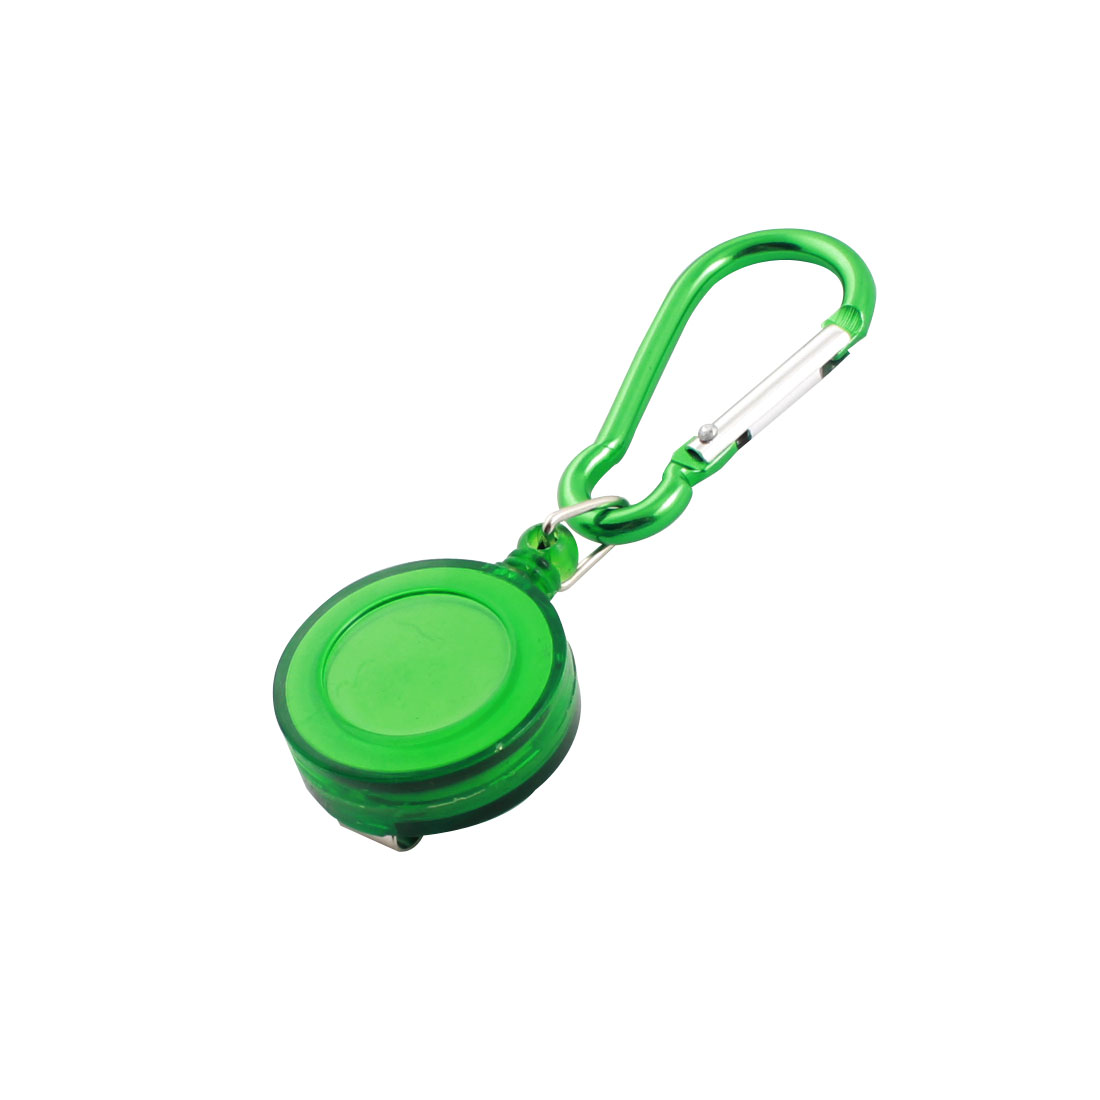 "Green D Shaped Carabiner Hook Retractable Cord Badge Reel 3.5"" Length"